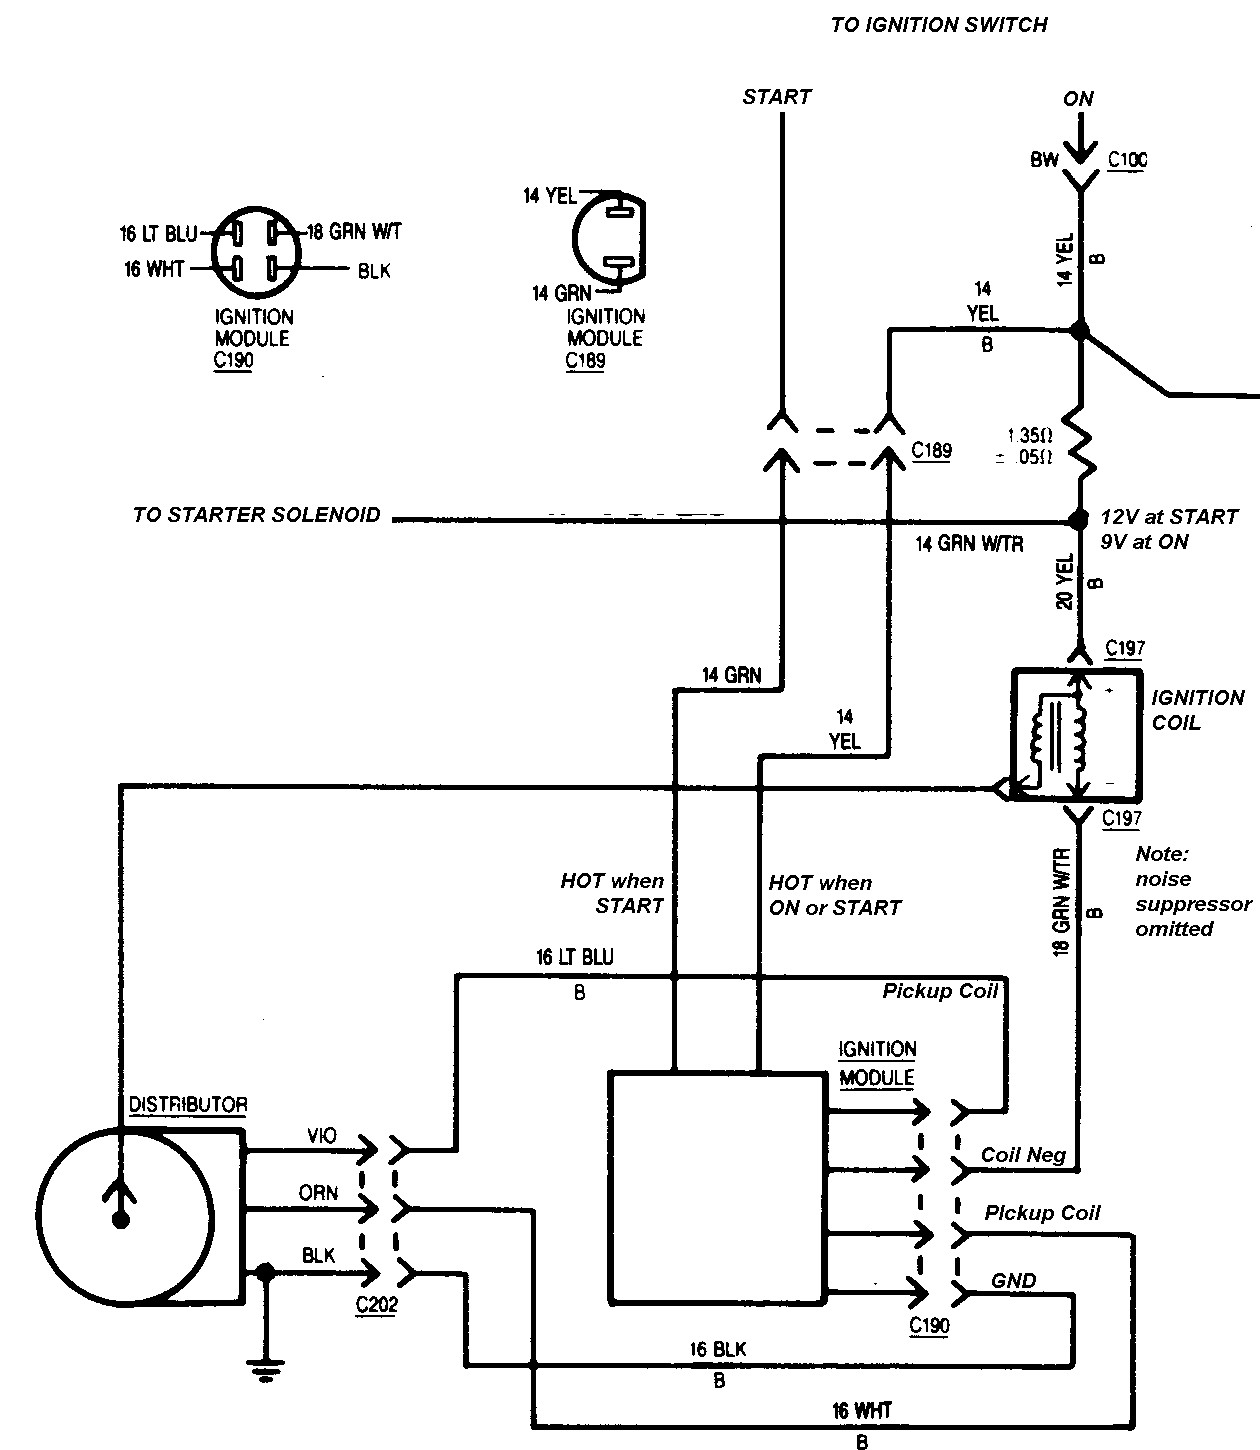 small resolution of 57 tbi wiring harness wiring diagram blogs tbi distributor wiring diagram 5 7 tbi wiring harness